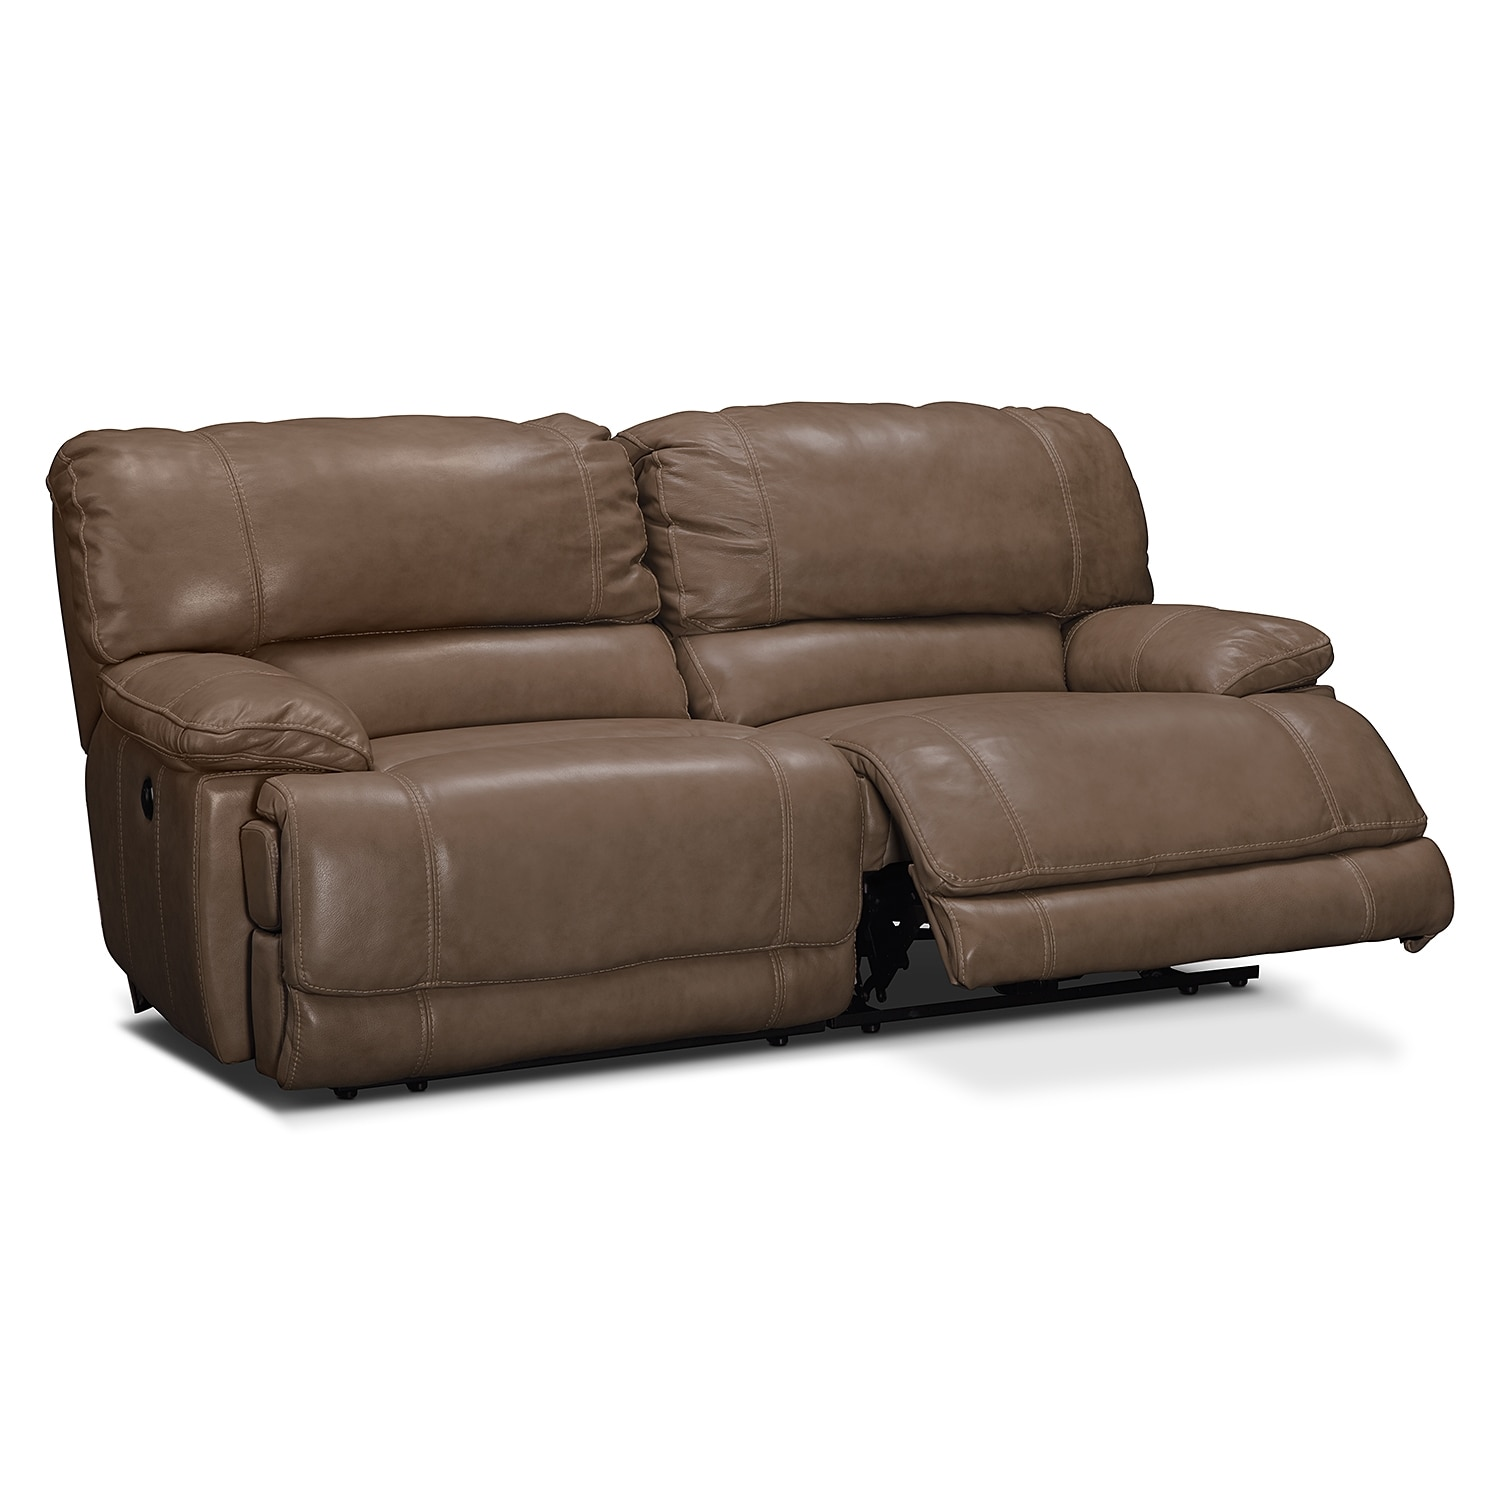 st malo power reclining sofa taupe american signature furniture. Black Bedroom Furniture Sets. Home Design Ideas